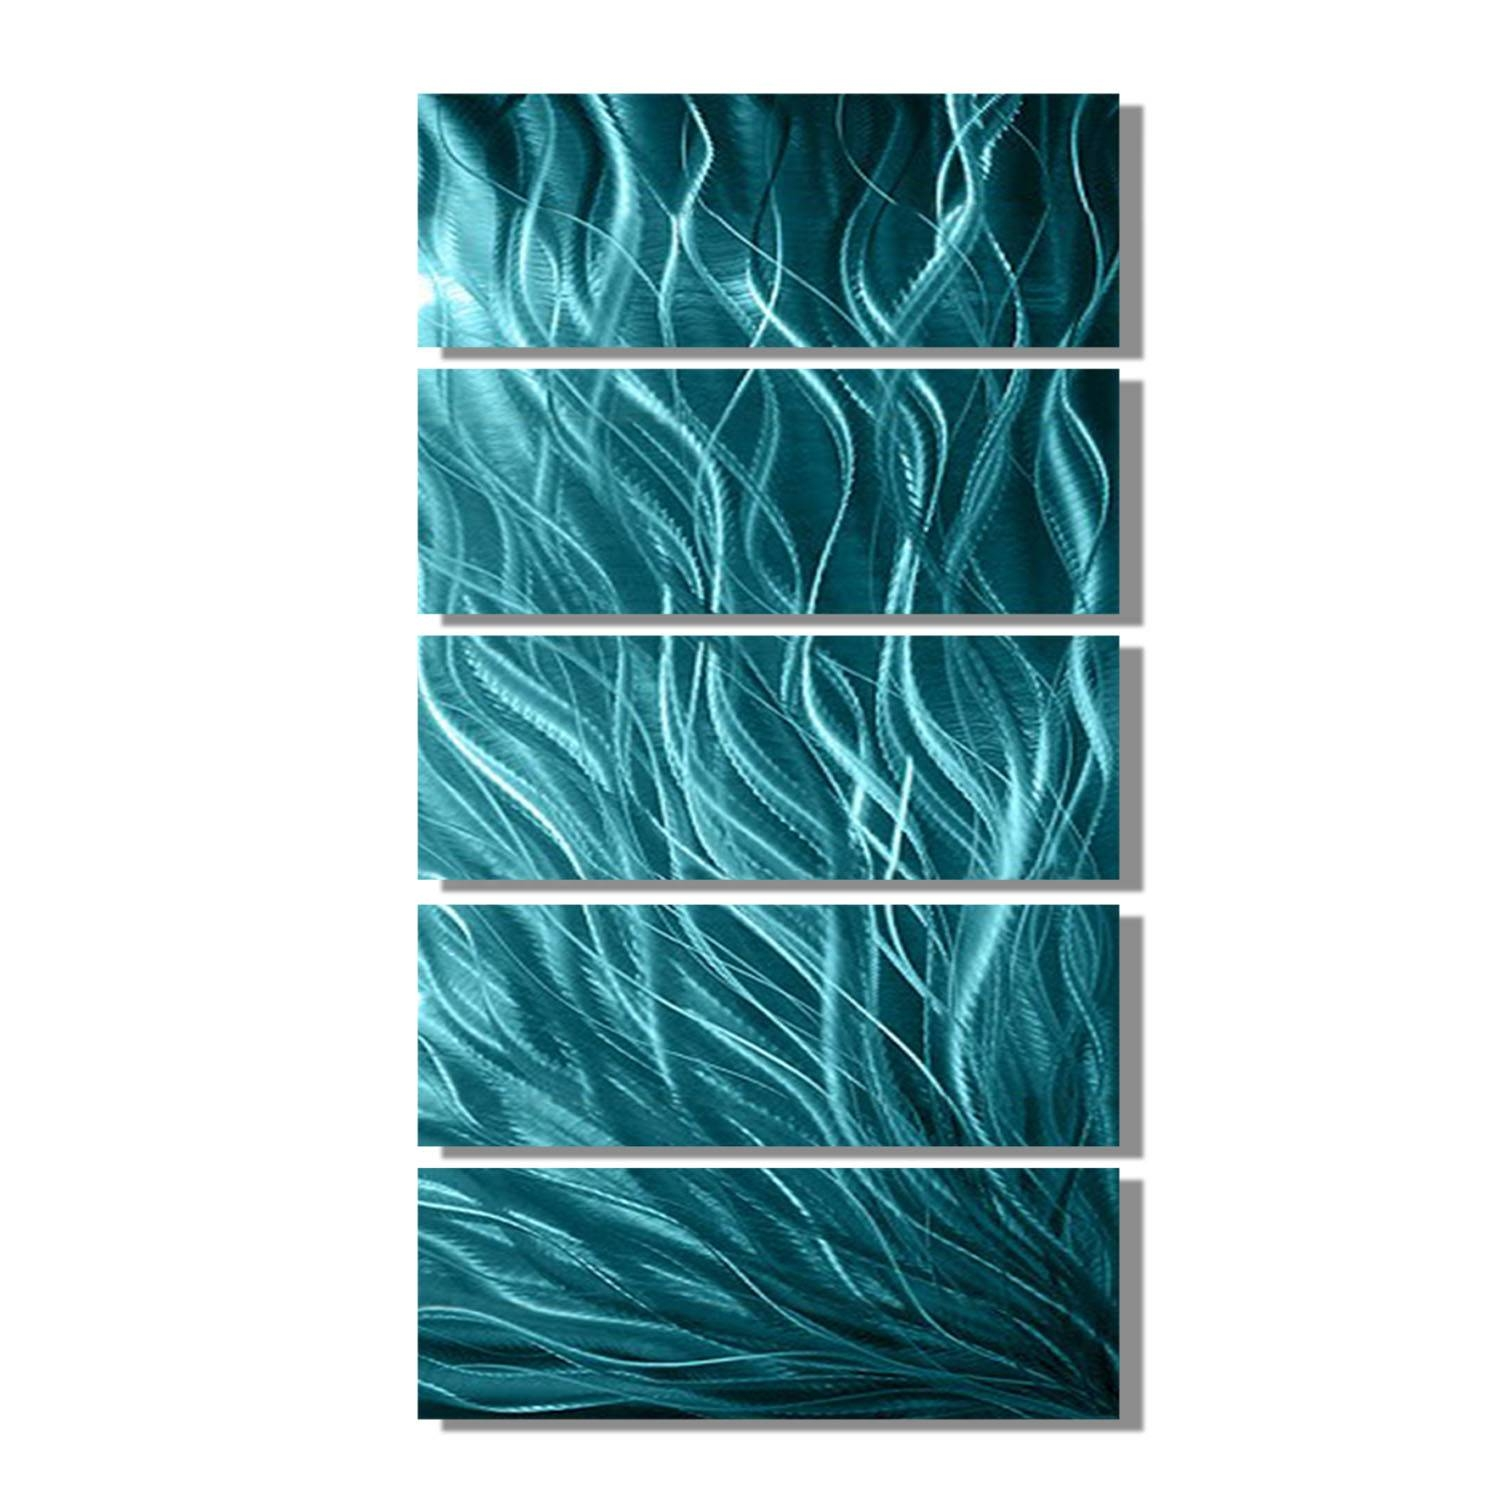 Echo 3 Blues Abstract Metal Wall Art Contemporary Modern Decor Intended For Most Recent Heron Metal Wall Art (View 6 of 20)